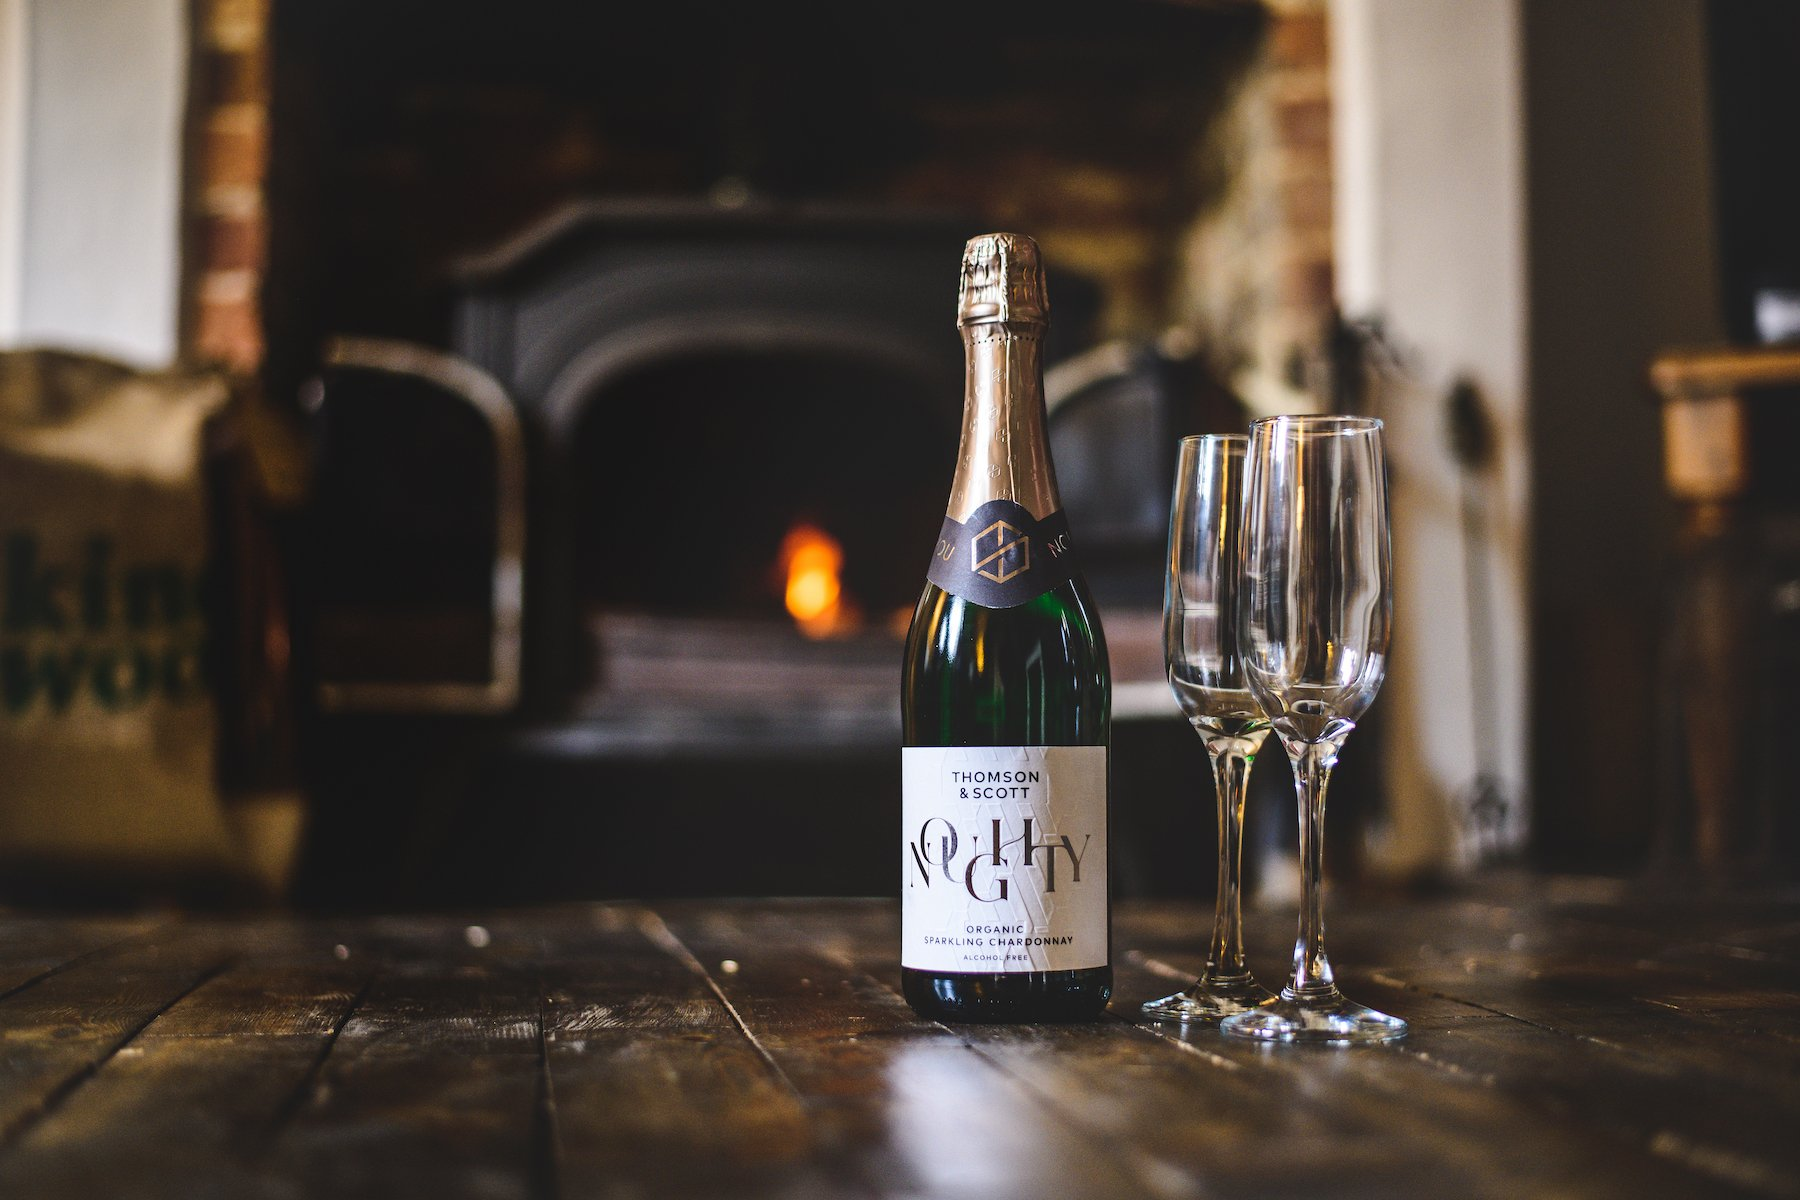 """In their list of """"Best non-alcoholic wine 2021: The best low-alcohol and alcohol-free red, white, sparkling and rosé wines,"""" Expert Reviews has placed Noughty in its Best Buy list as the go-to sparkling for those seeking non-alcoholic alternatives to Champagne and Prosecco."""